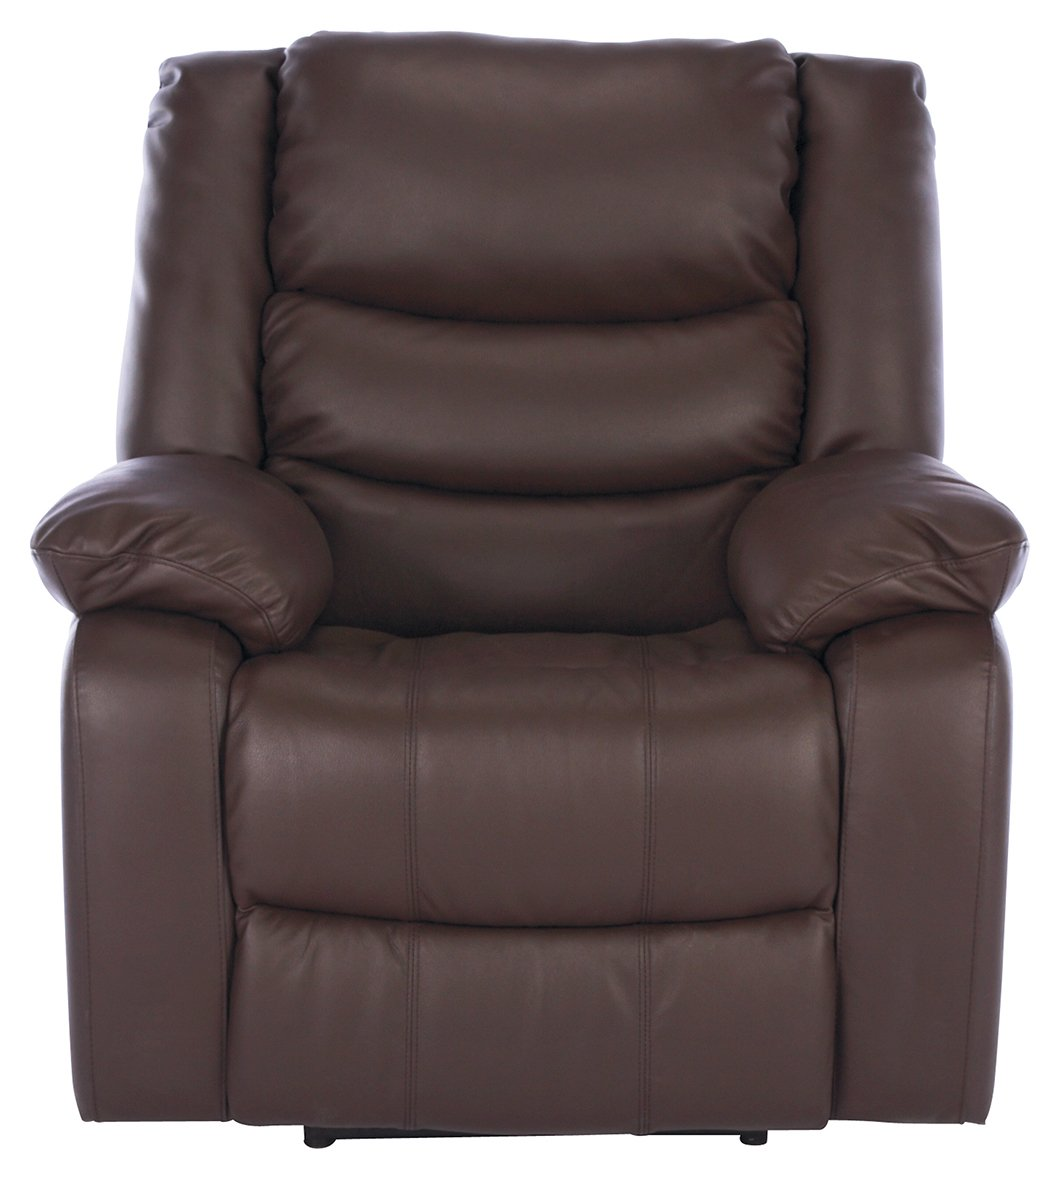 Collection - Power Massage - Leather - Recliner Chair - Chocolate